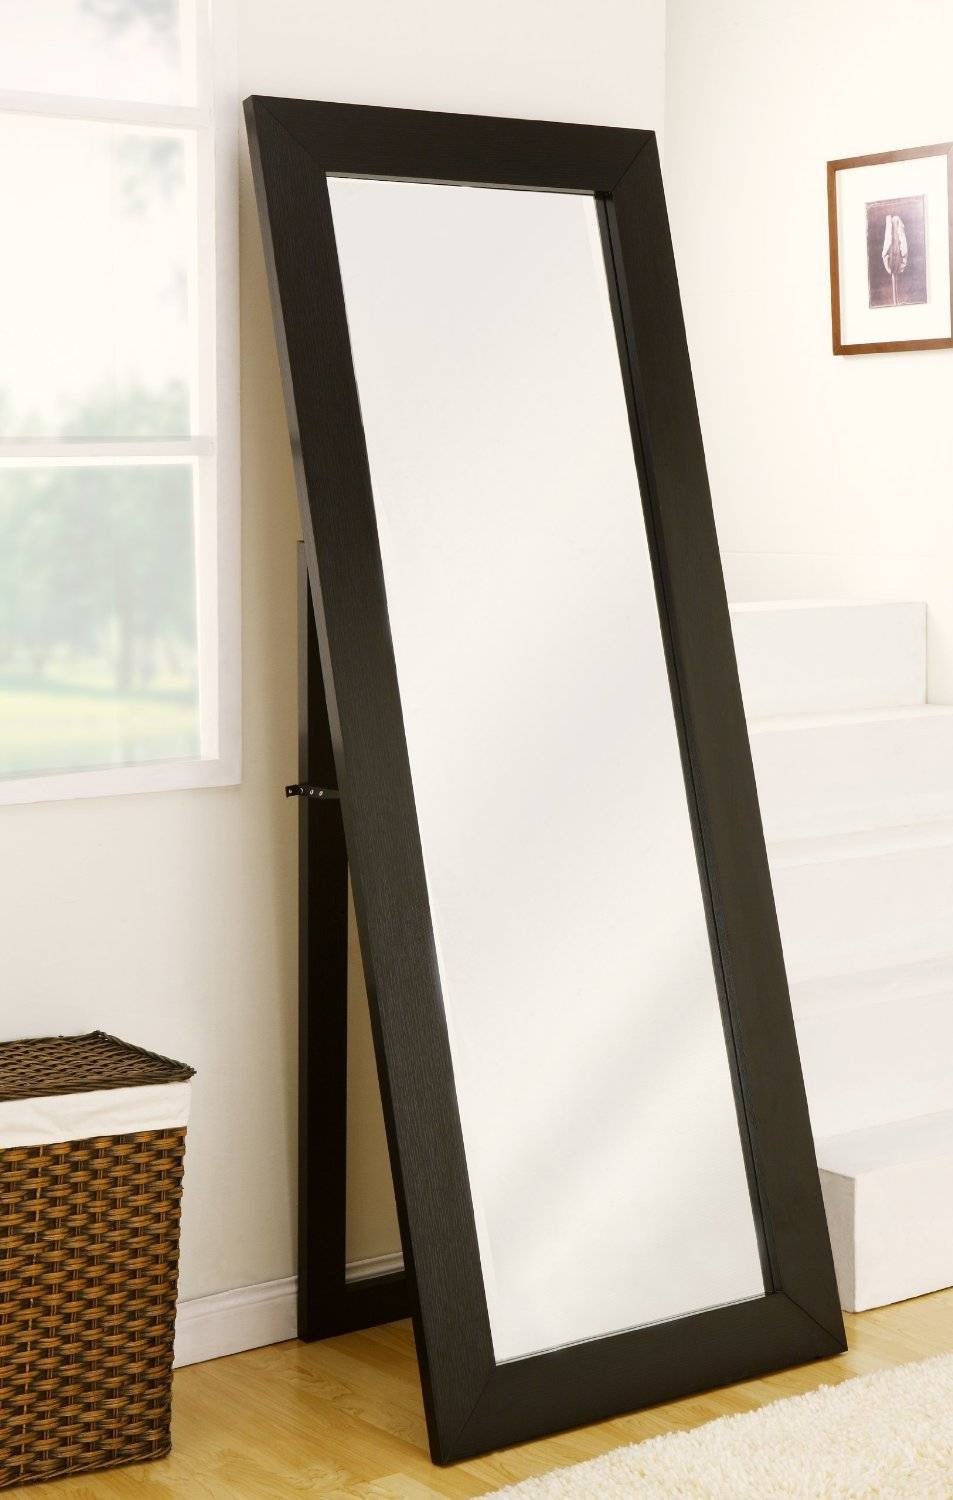 Bedroom Furniture Sets : Large Vintage Extra Large Wall Standing Pertaining To Extra Large Free Standing Mirrors (View 5 of 25)